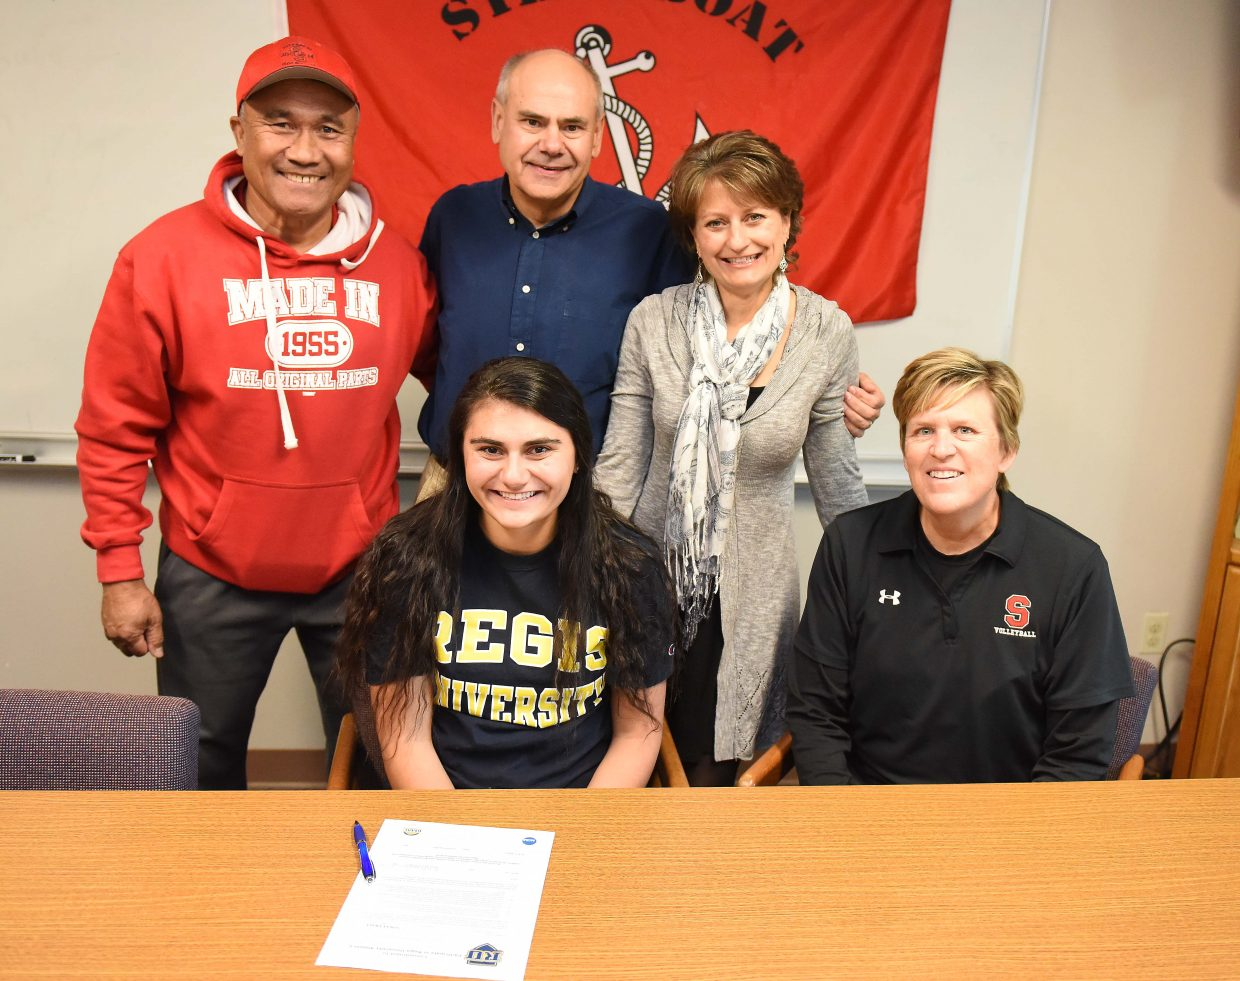 Steamboat Springs High School senior Maddie Labor signed a letter of intent to play for Regis University in Denver next year. Labor was a libero and a leader on this season's league championship volleyball team.